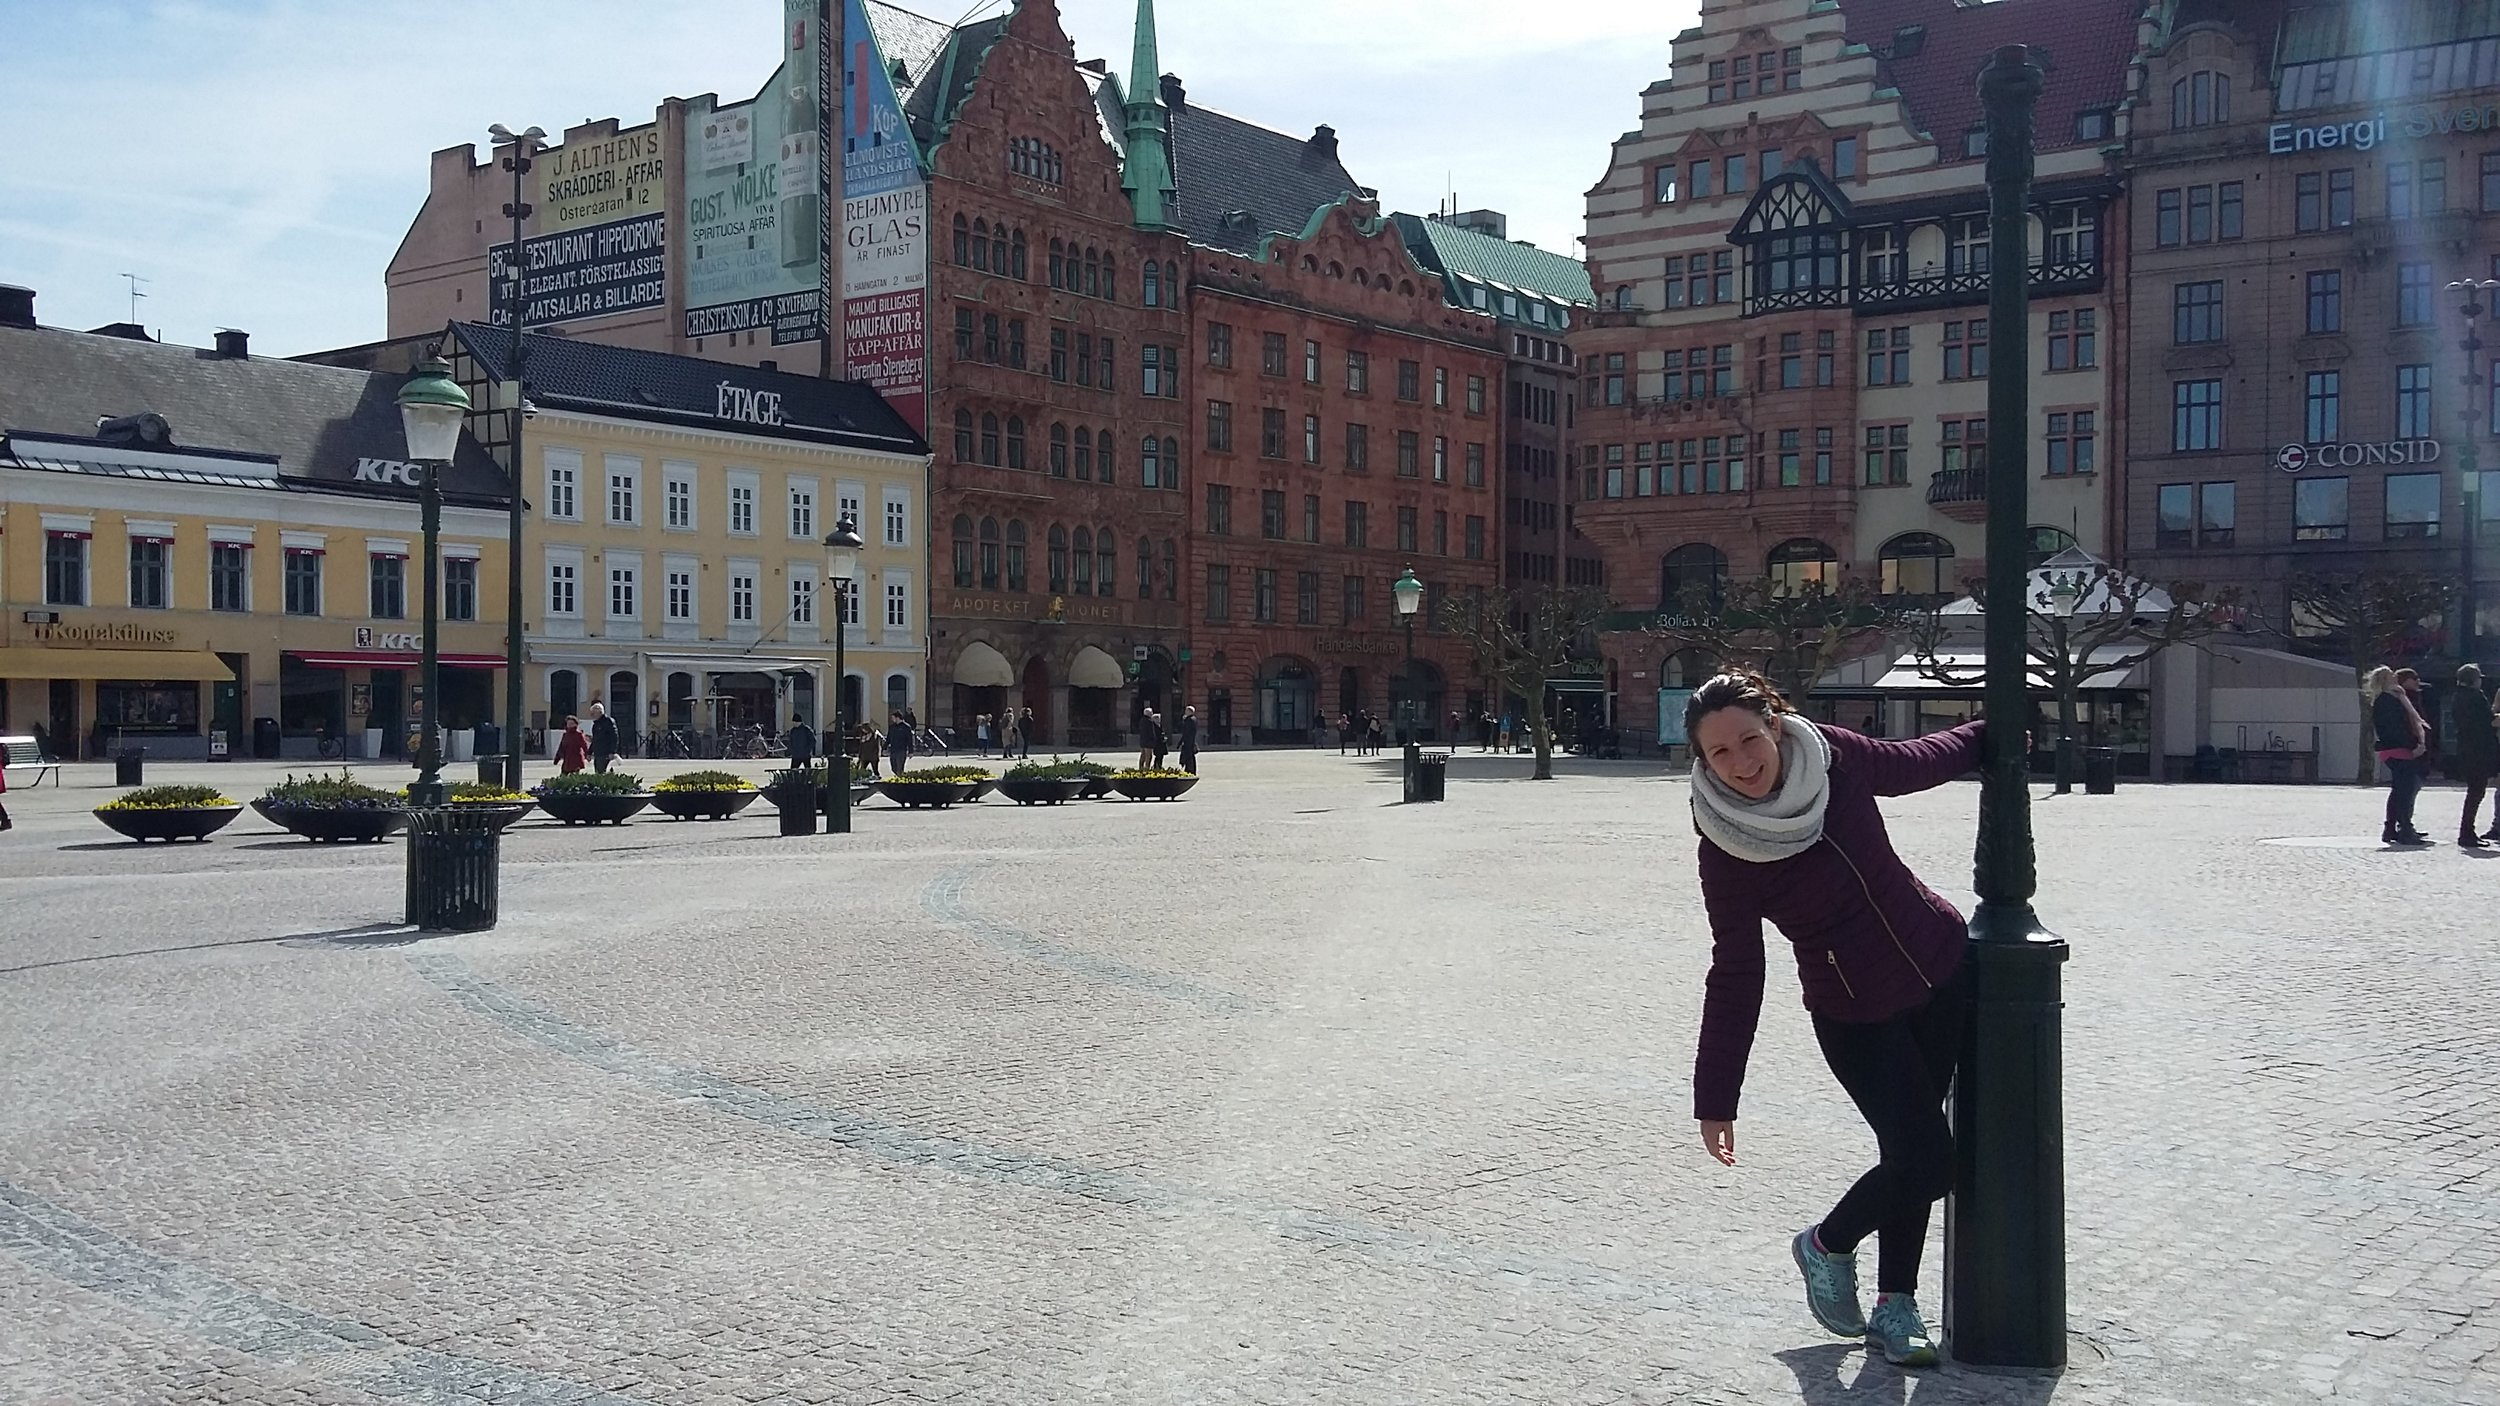 Hanging out in Sweden